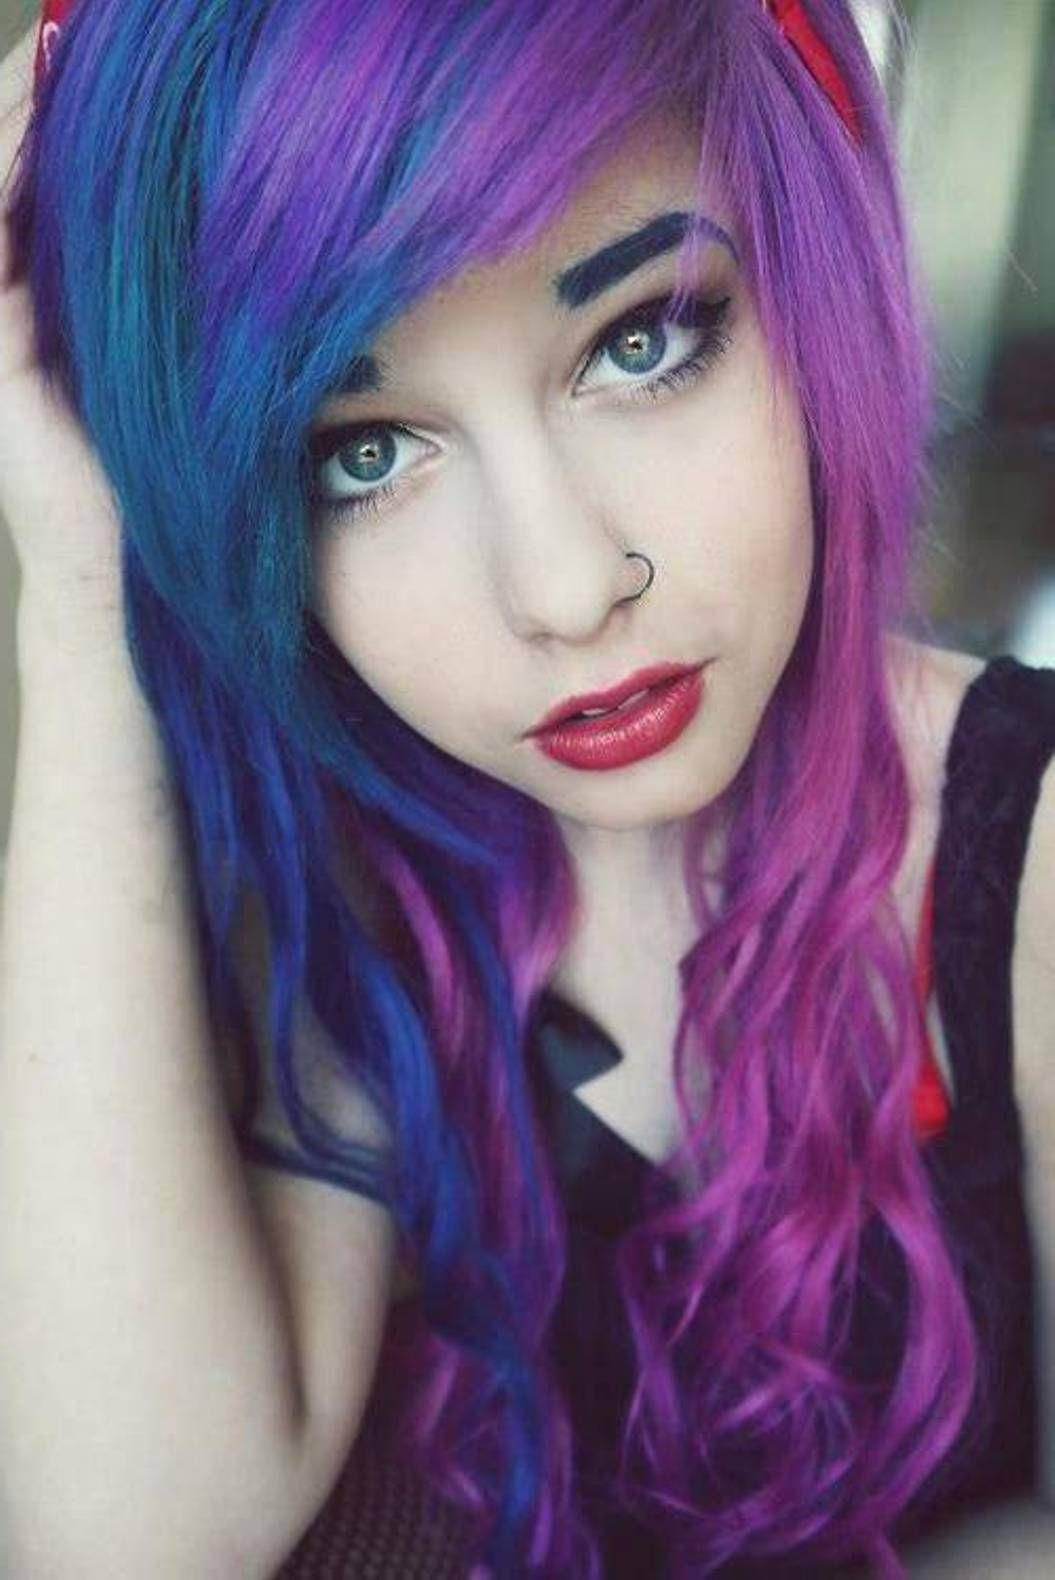 Images about hair colors and styles on pinterest - Scene Hair Color Ideas Women Style Celebrity Plastic Surgery Photos Before And After Http